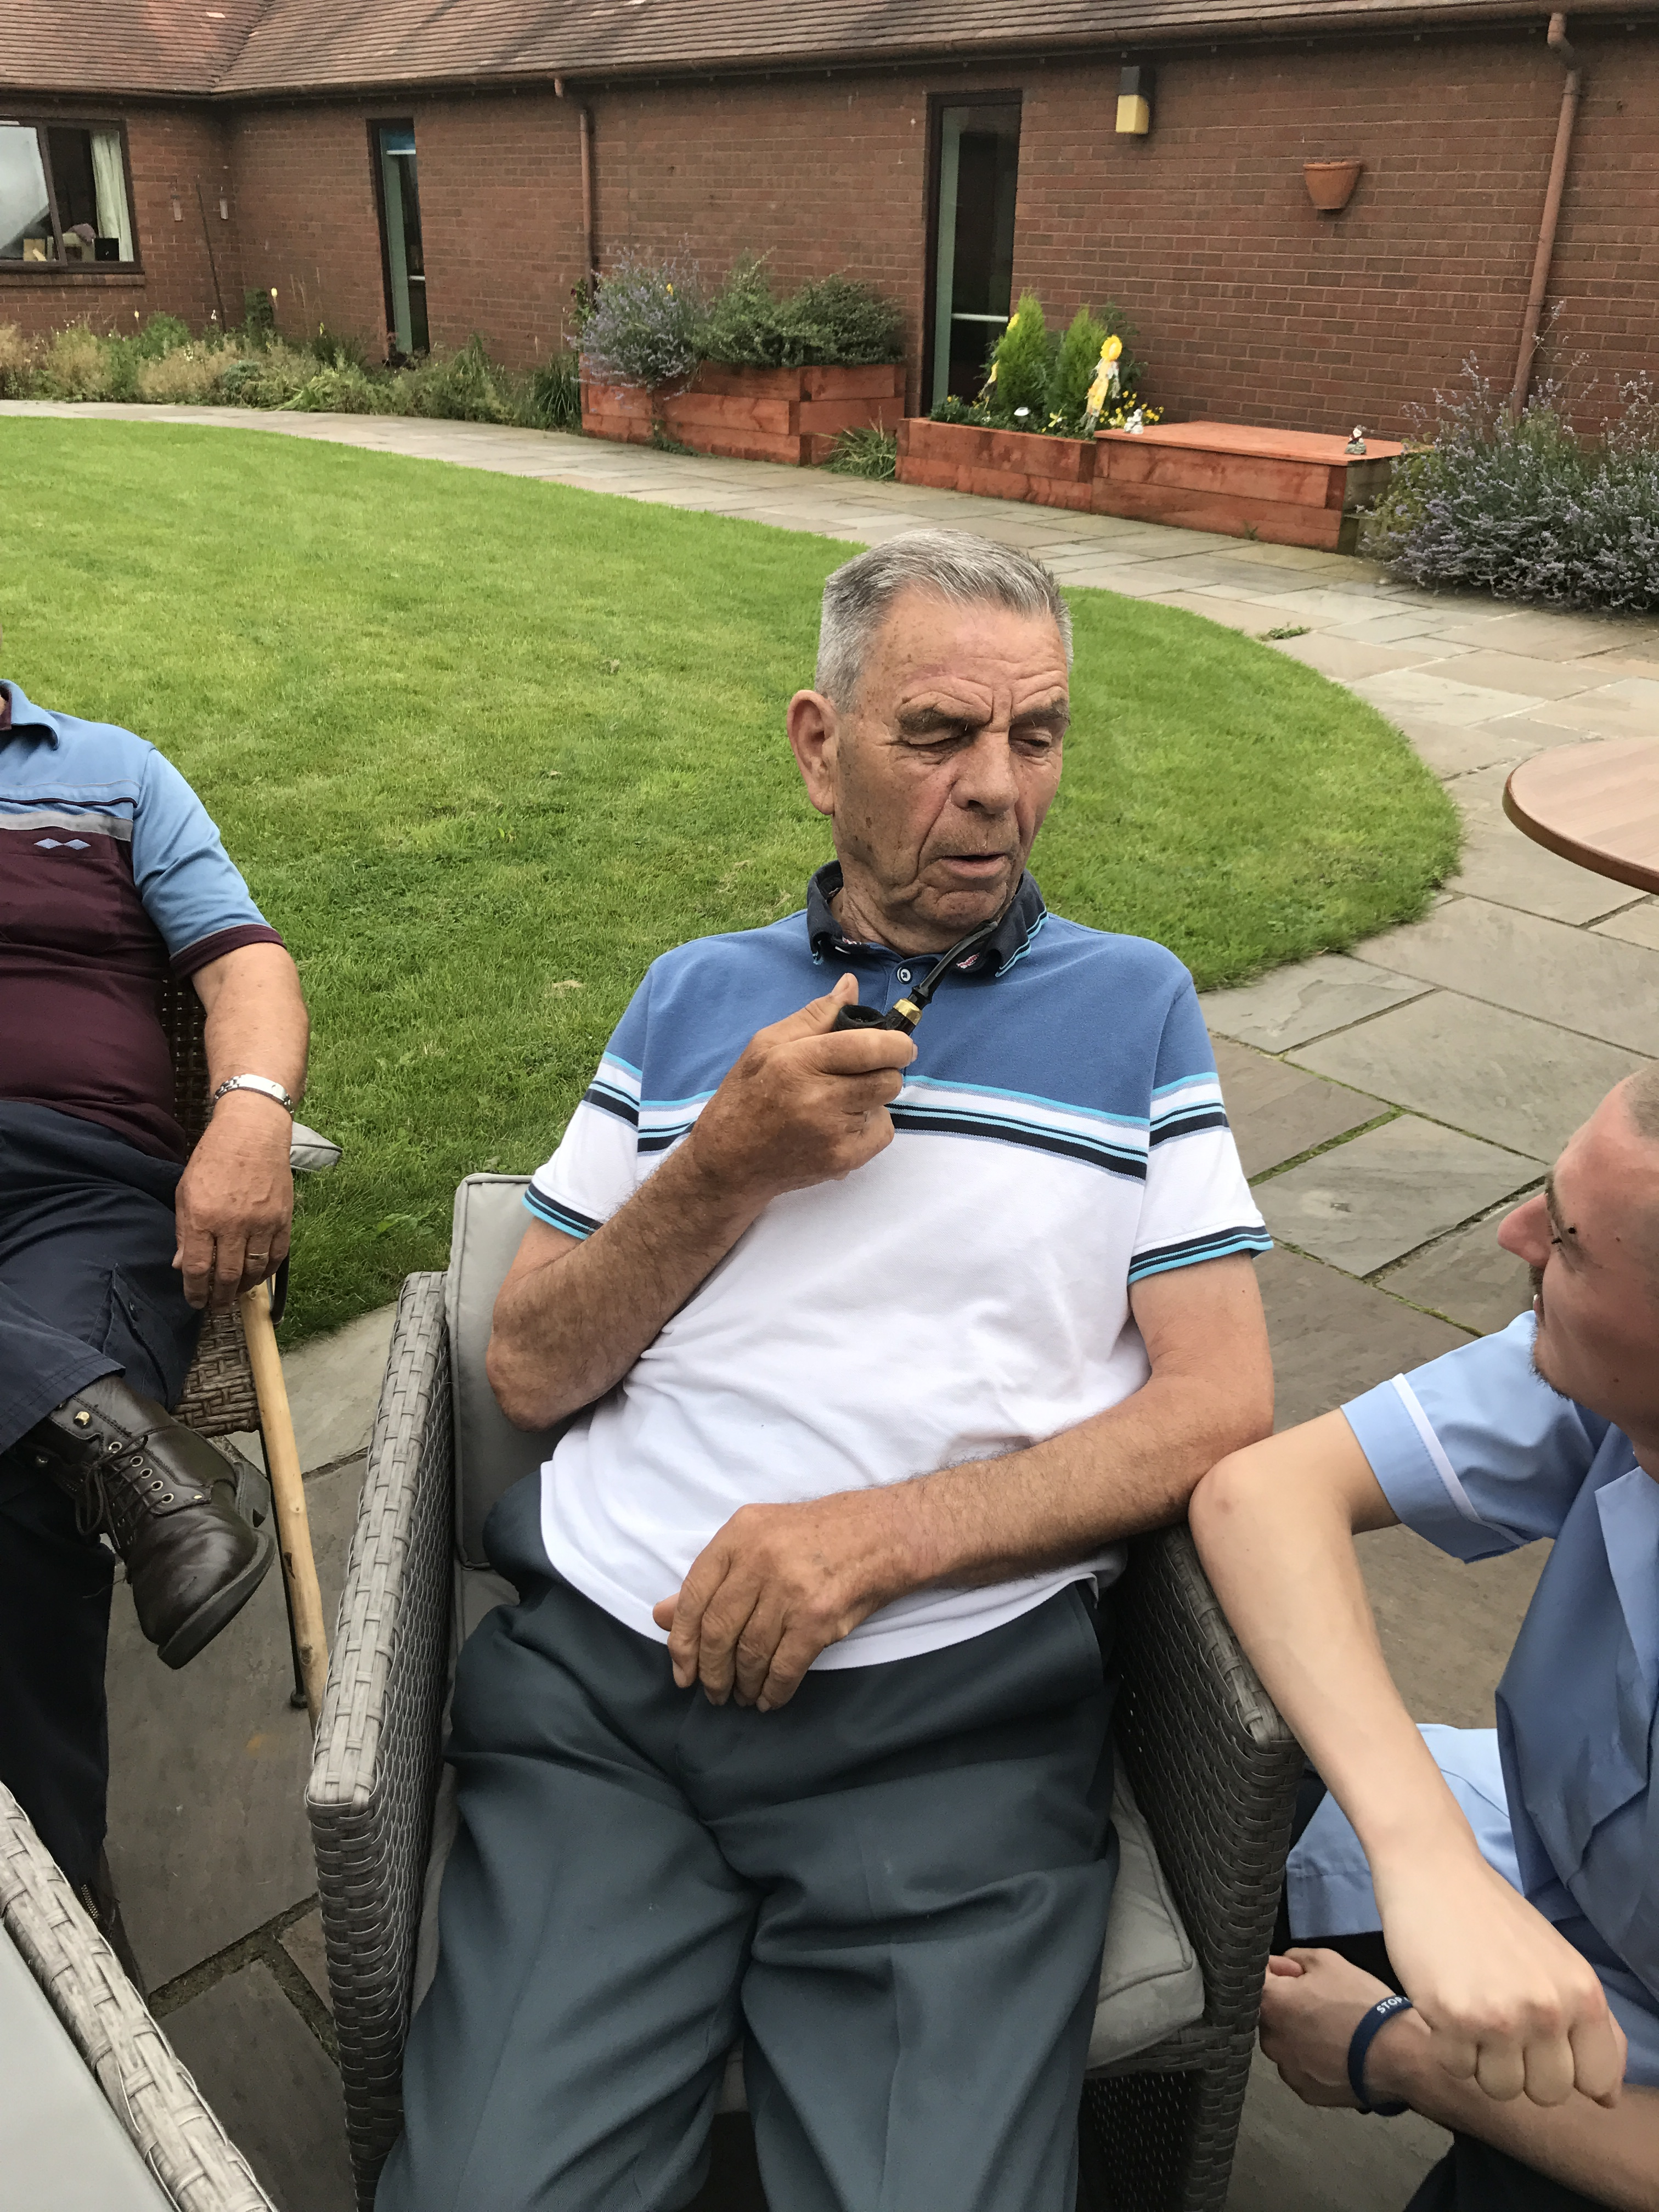 Chilling out in the Grace Court Garden Aug 17: Key Healthcare is dedicated to caring for elderly residents in safe. We have multiple dementia care homes including our care home middlesbrough, our care home St. Helen and care home saltburn. We excel in monitoring and improving care levels.